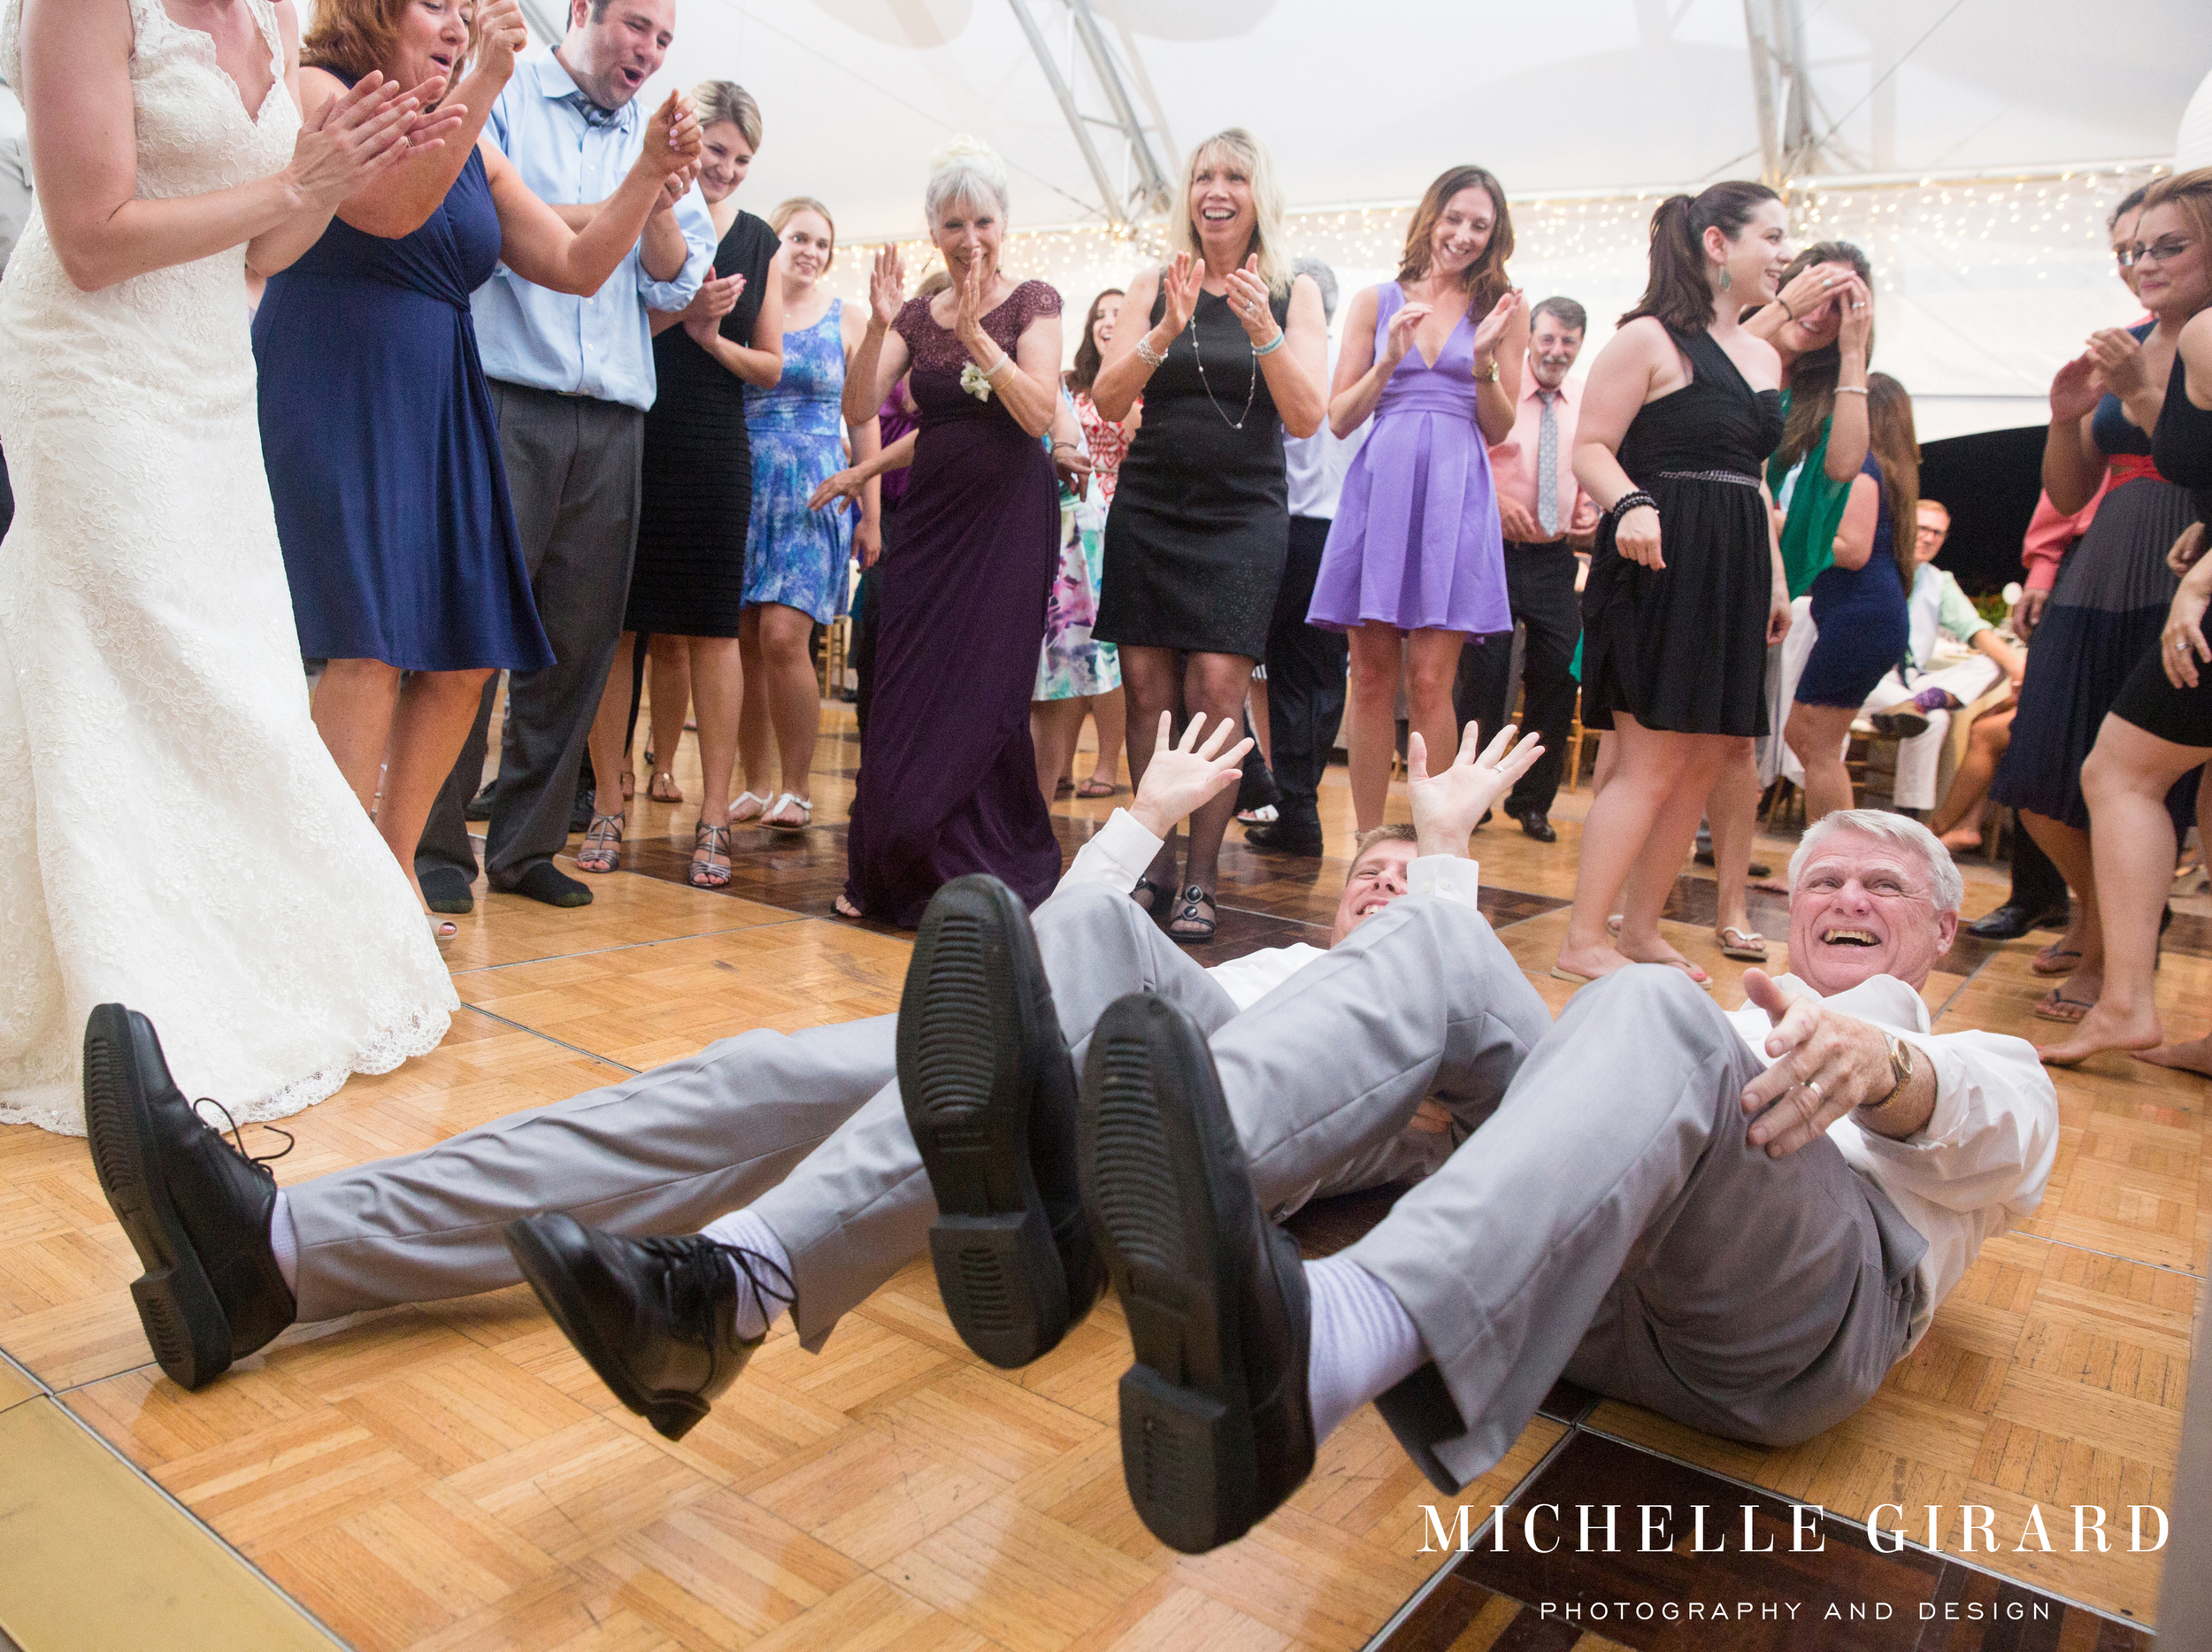 WeddingPhotography_MichelleGirardPhotography069.jpg